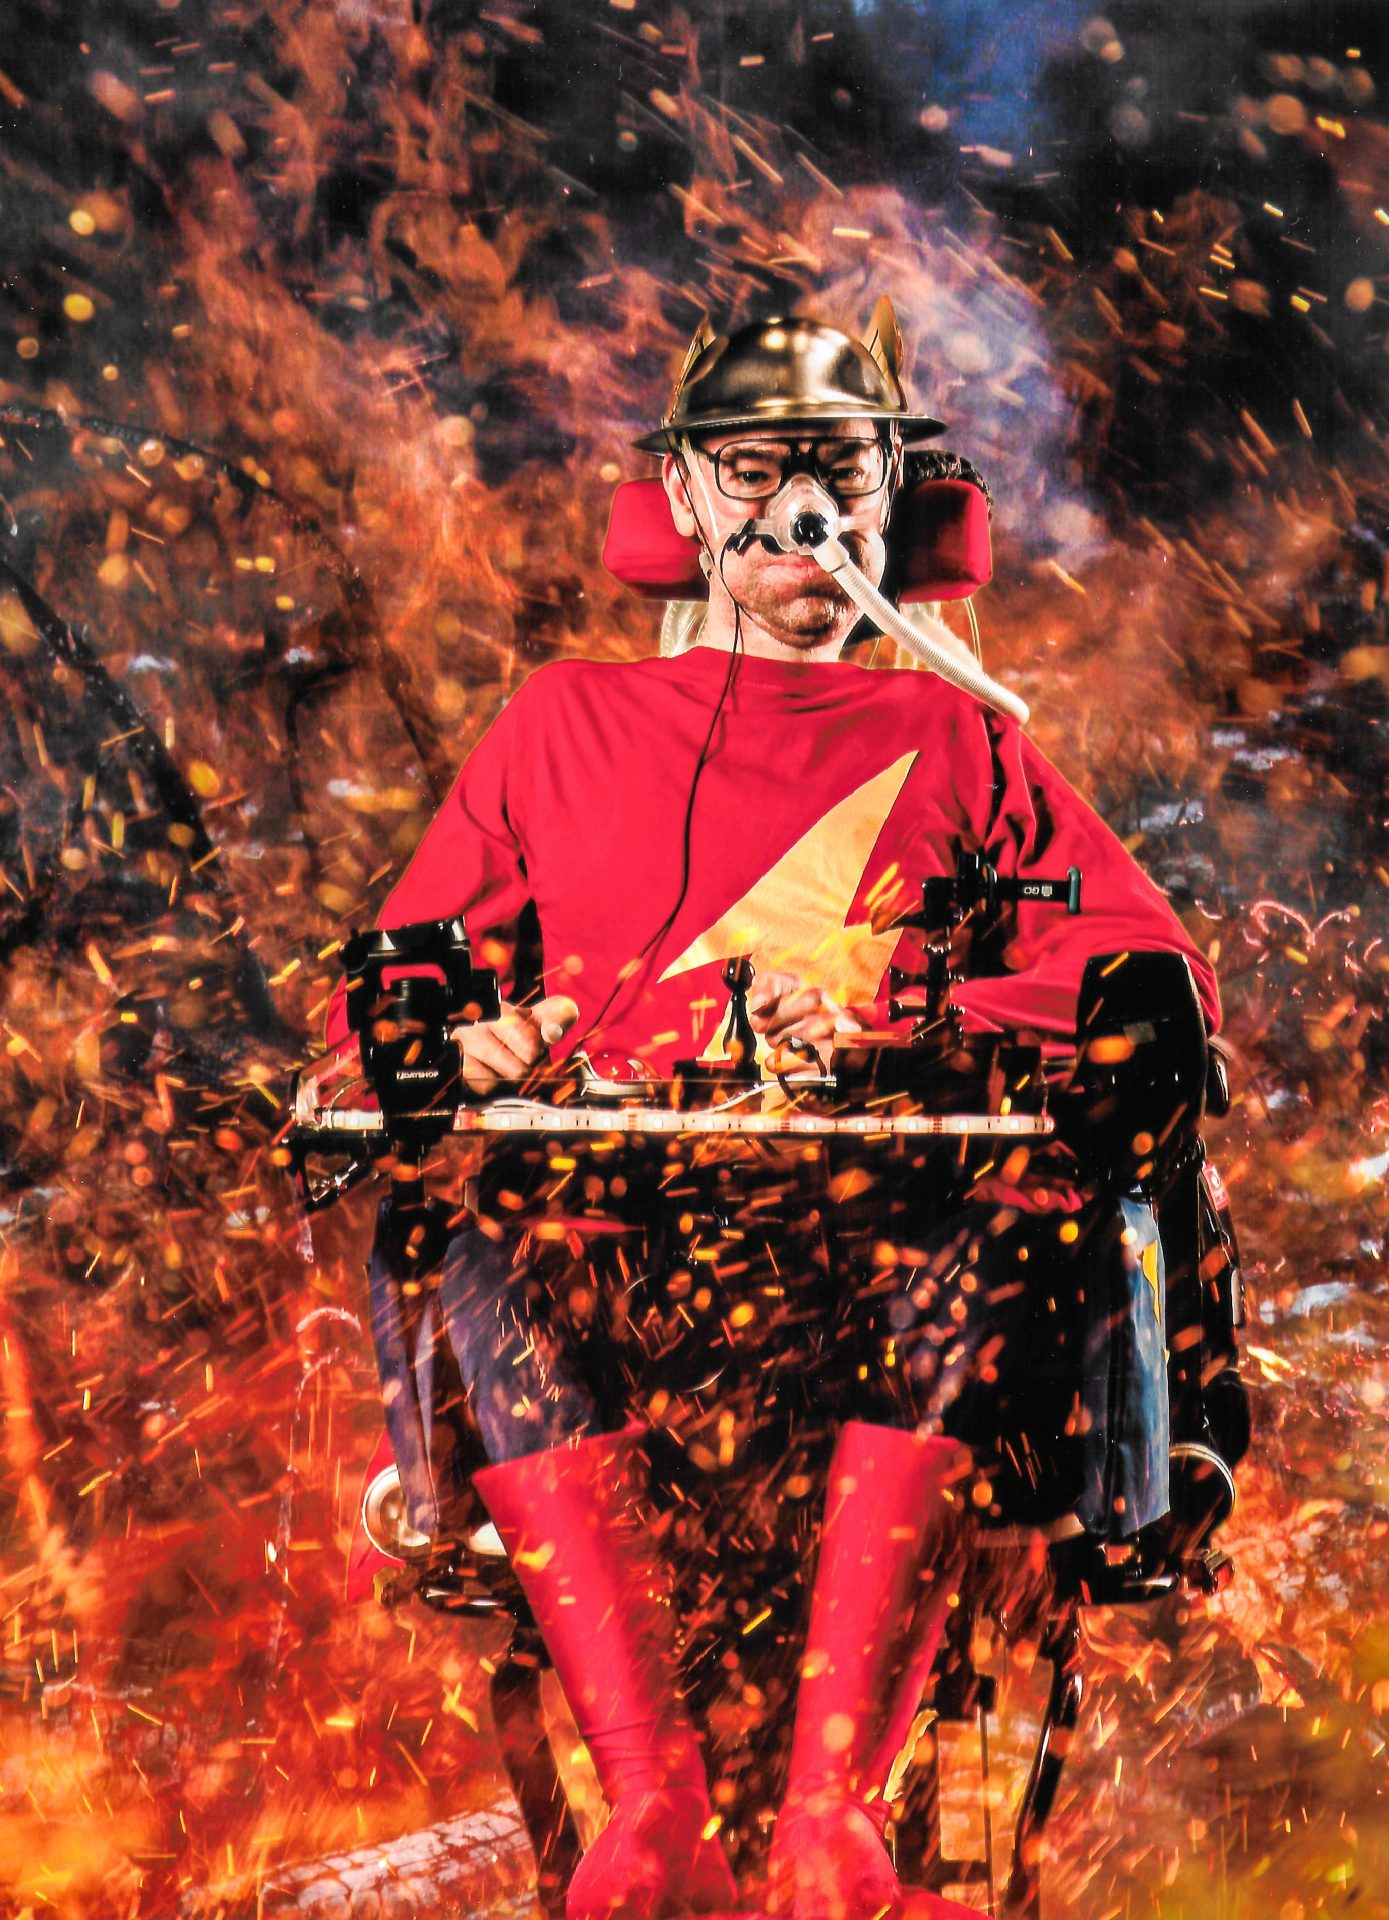 Daniel Baker dressed as Jay Garrick The Flash surrounded by fire